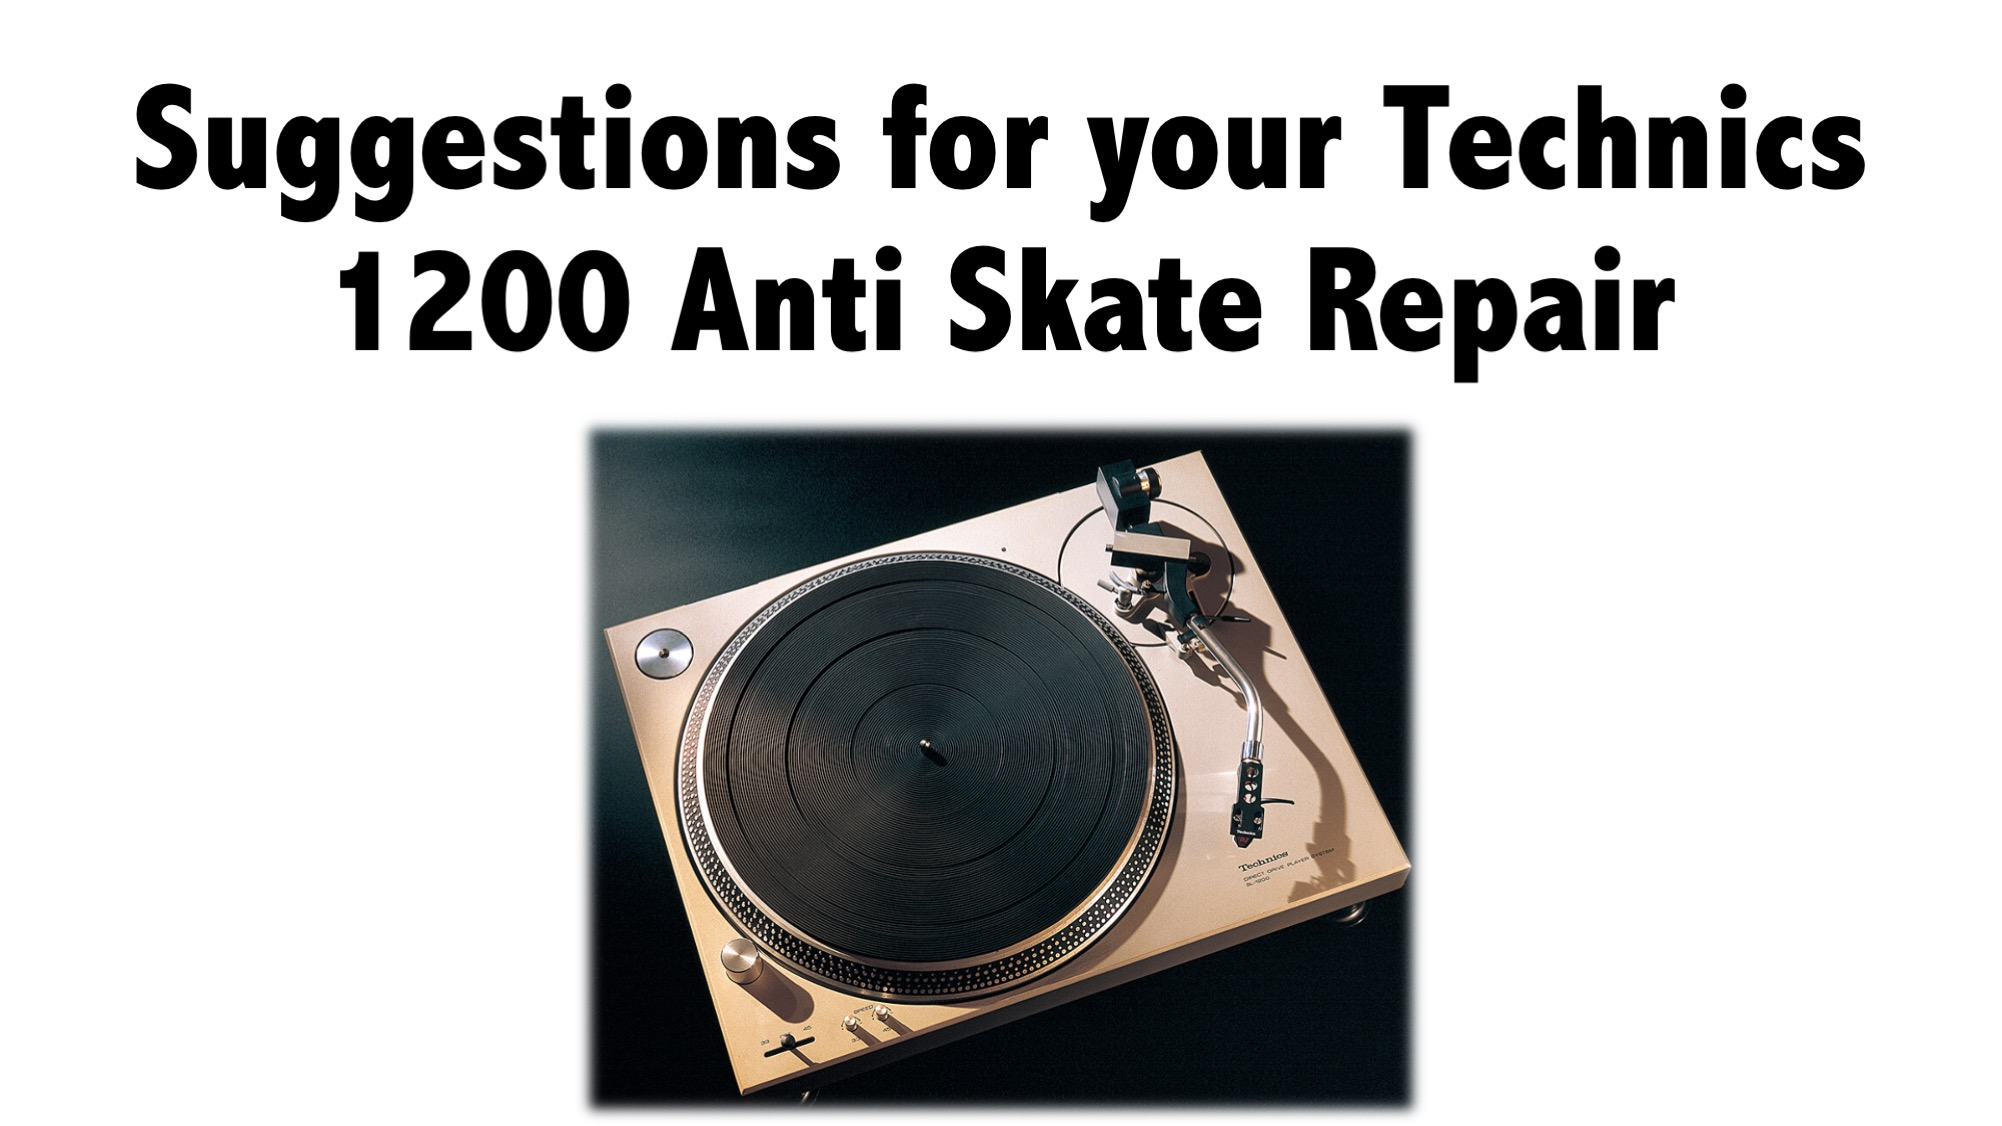 Suggestions for your Technics 1200 Anti Skate Repair